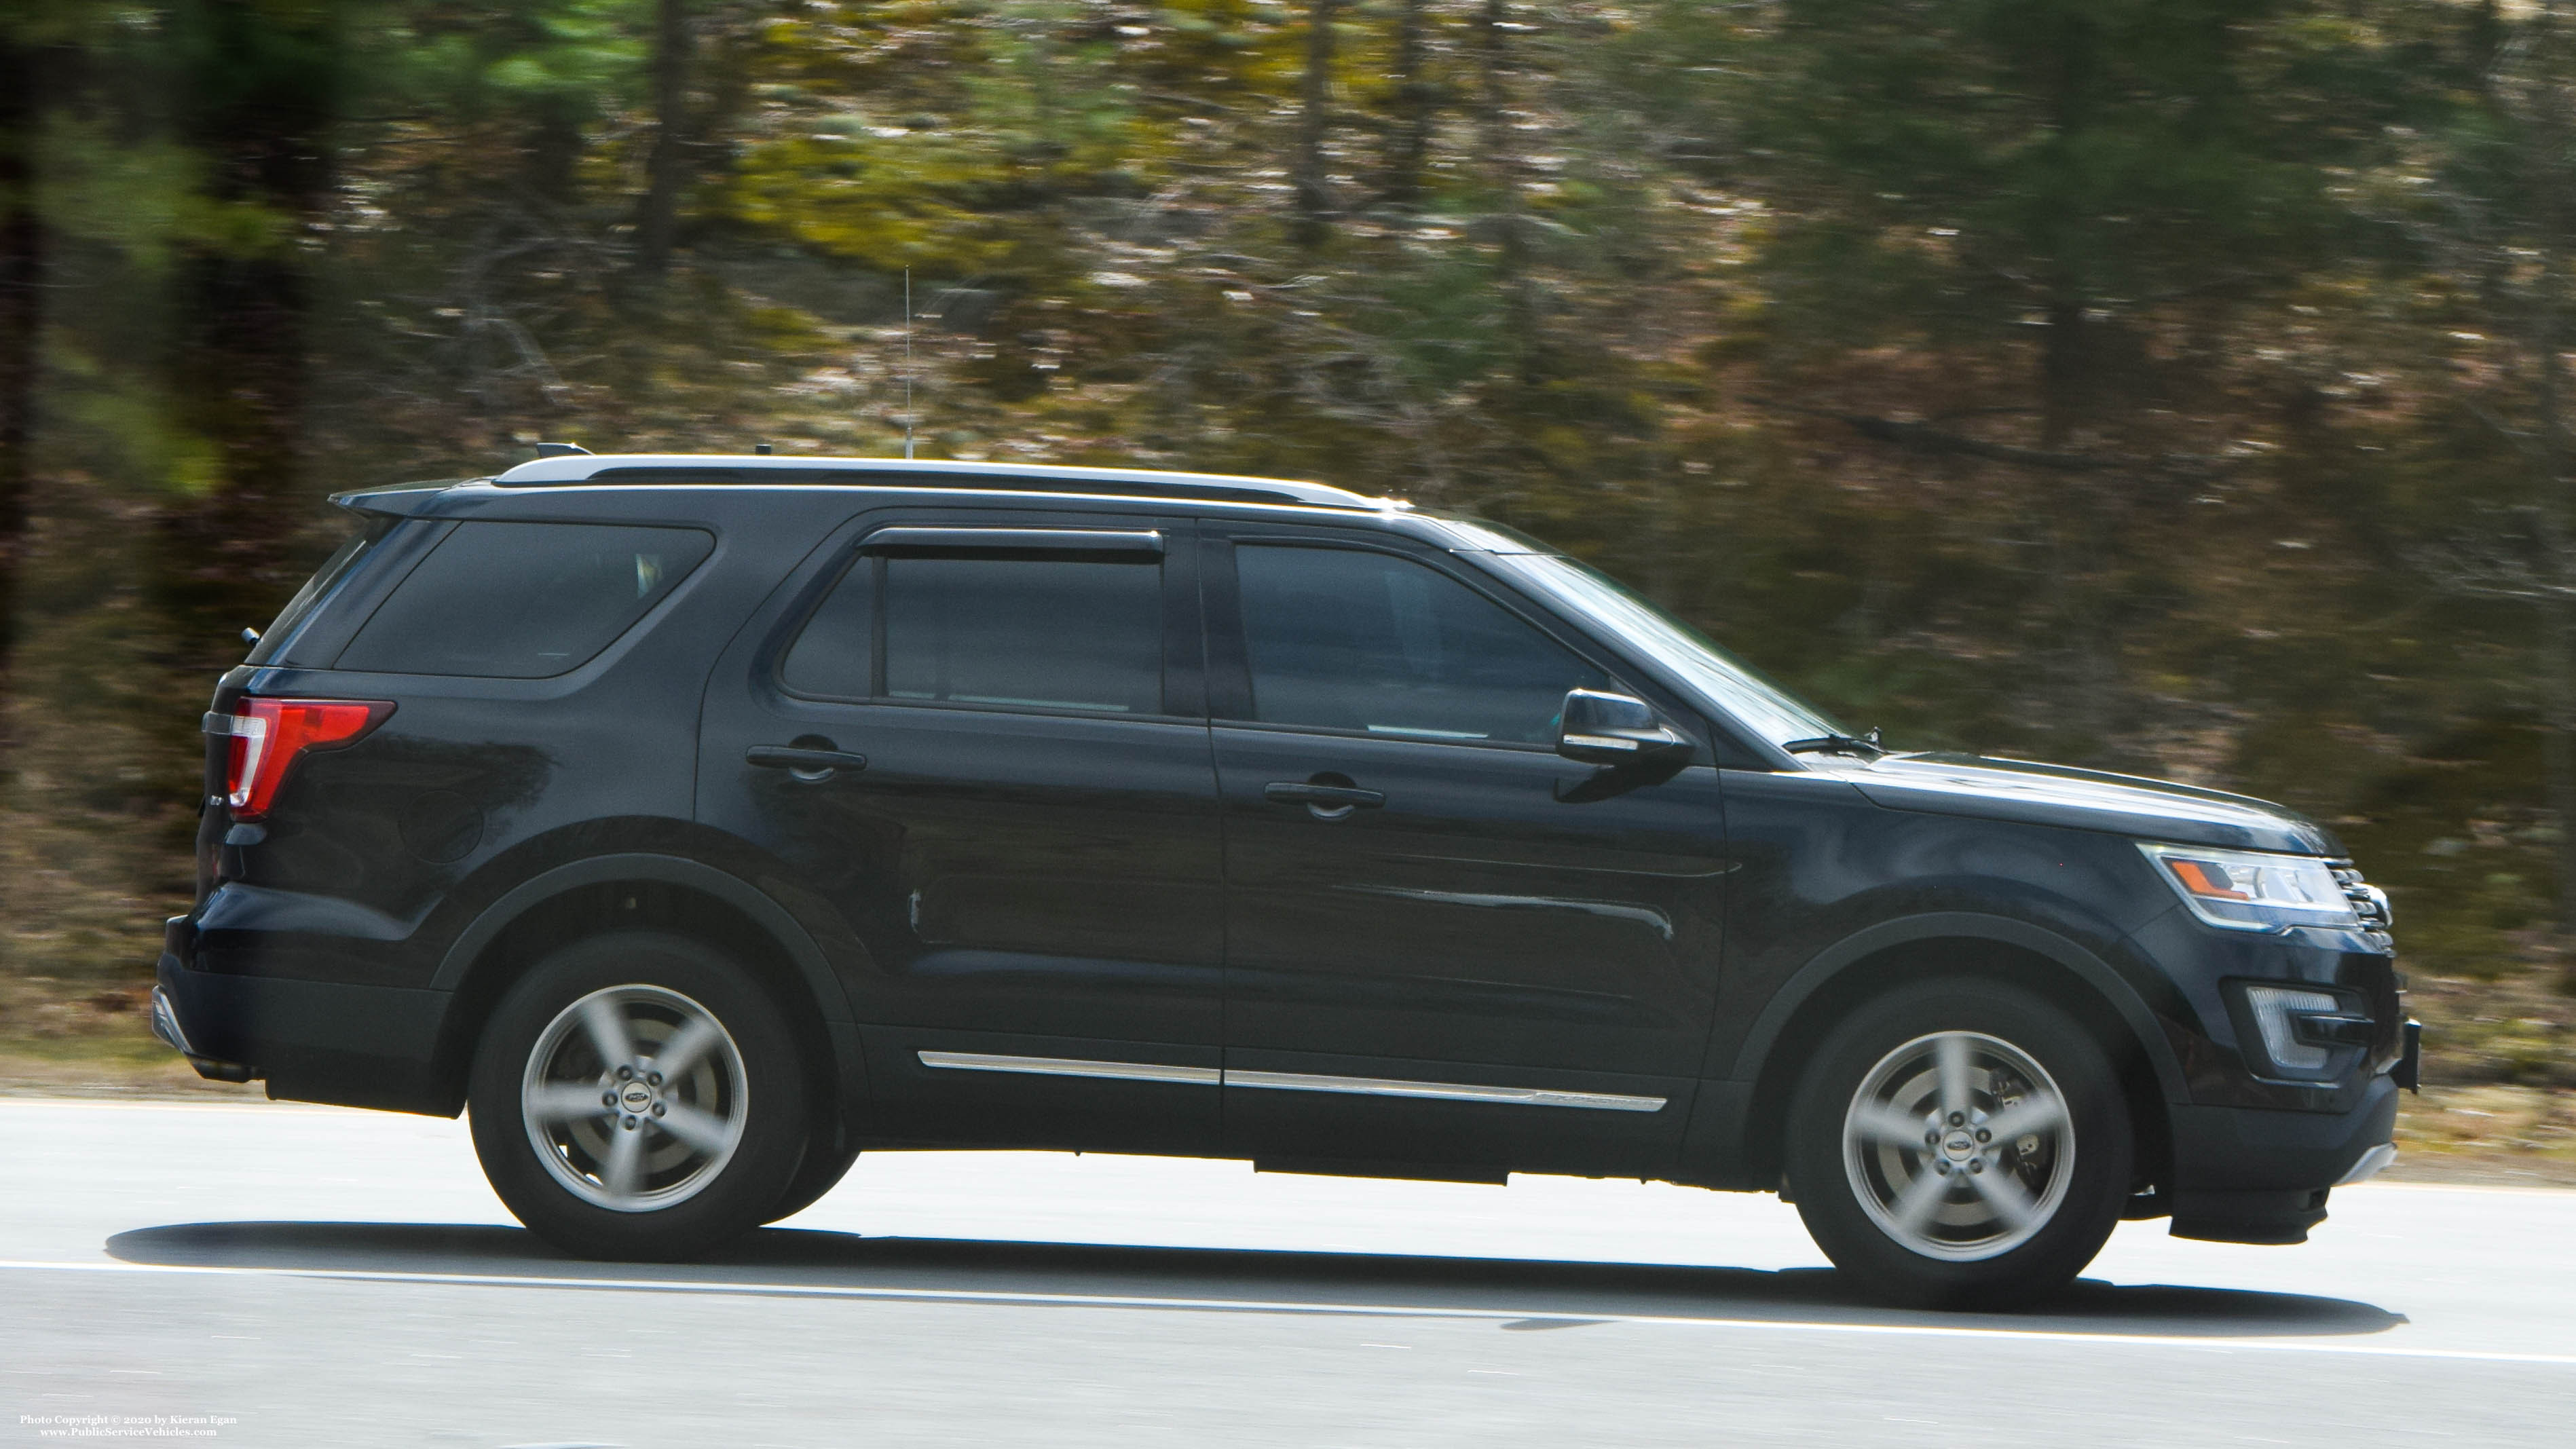 A photo  of Rhode Island State Police             Unmarked Unit, a 2016-2019 Ford Explorer             taken by Kieran Egan